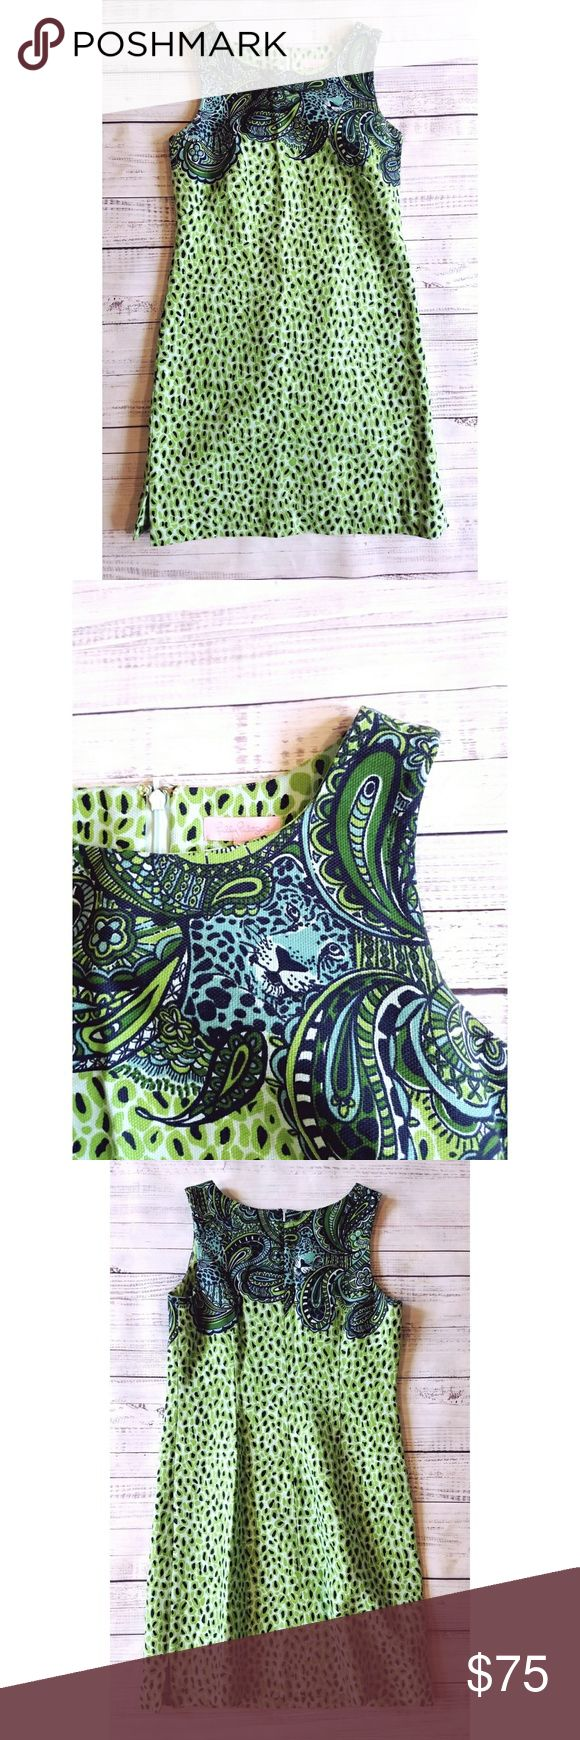 Lilly Pulitzer Shift dress Lightly worn Linned Zipper in back  17.5 inches from armpit to armpit 16.5 inch flat waist  35.5 inches long Cotton and xla lastol Lilly Pulitzer Dresses